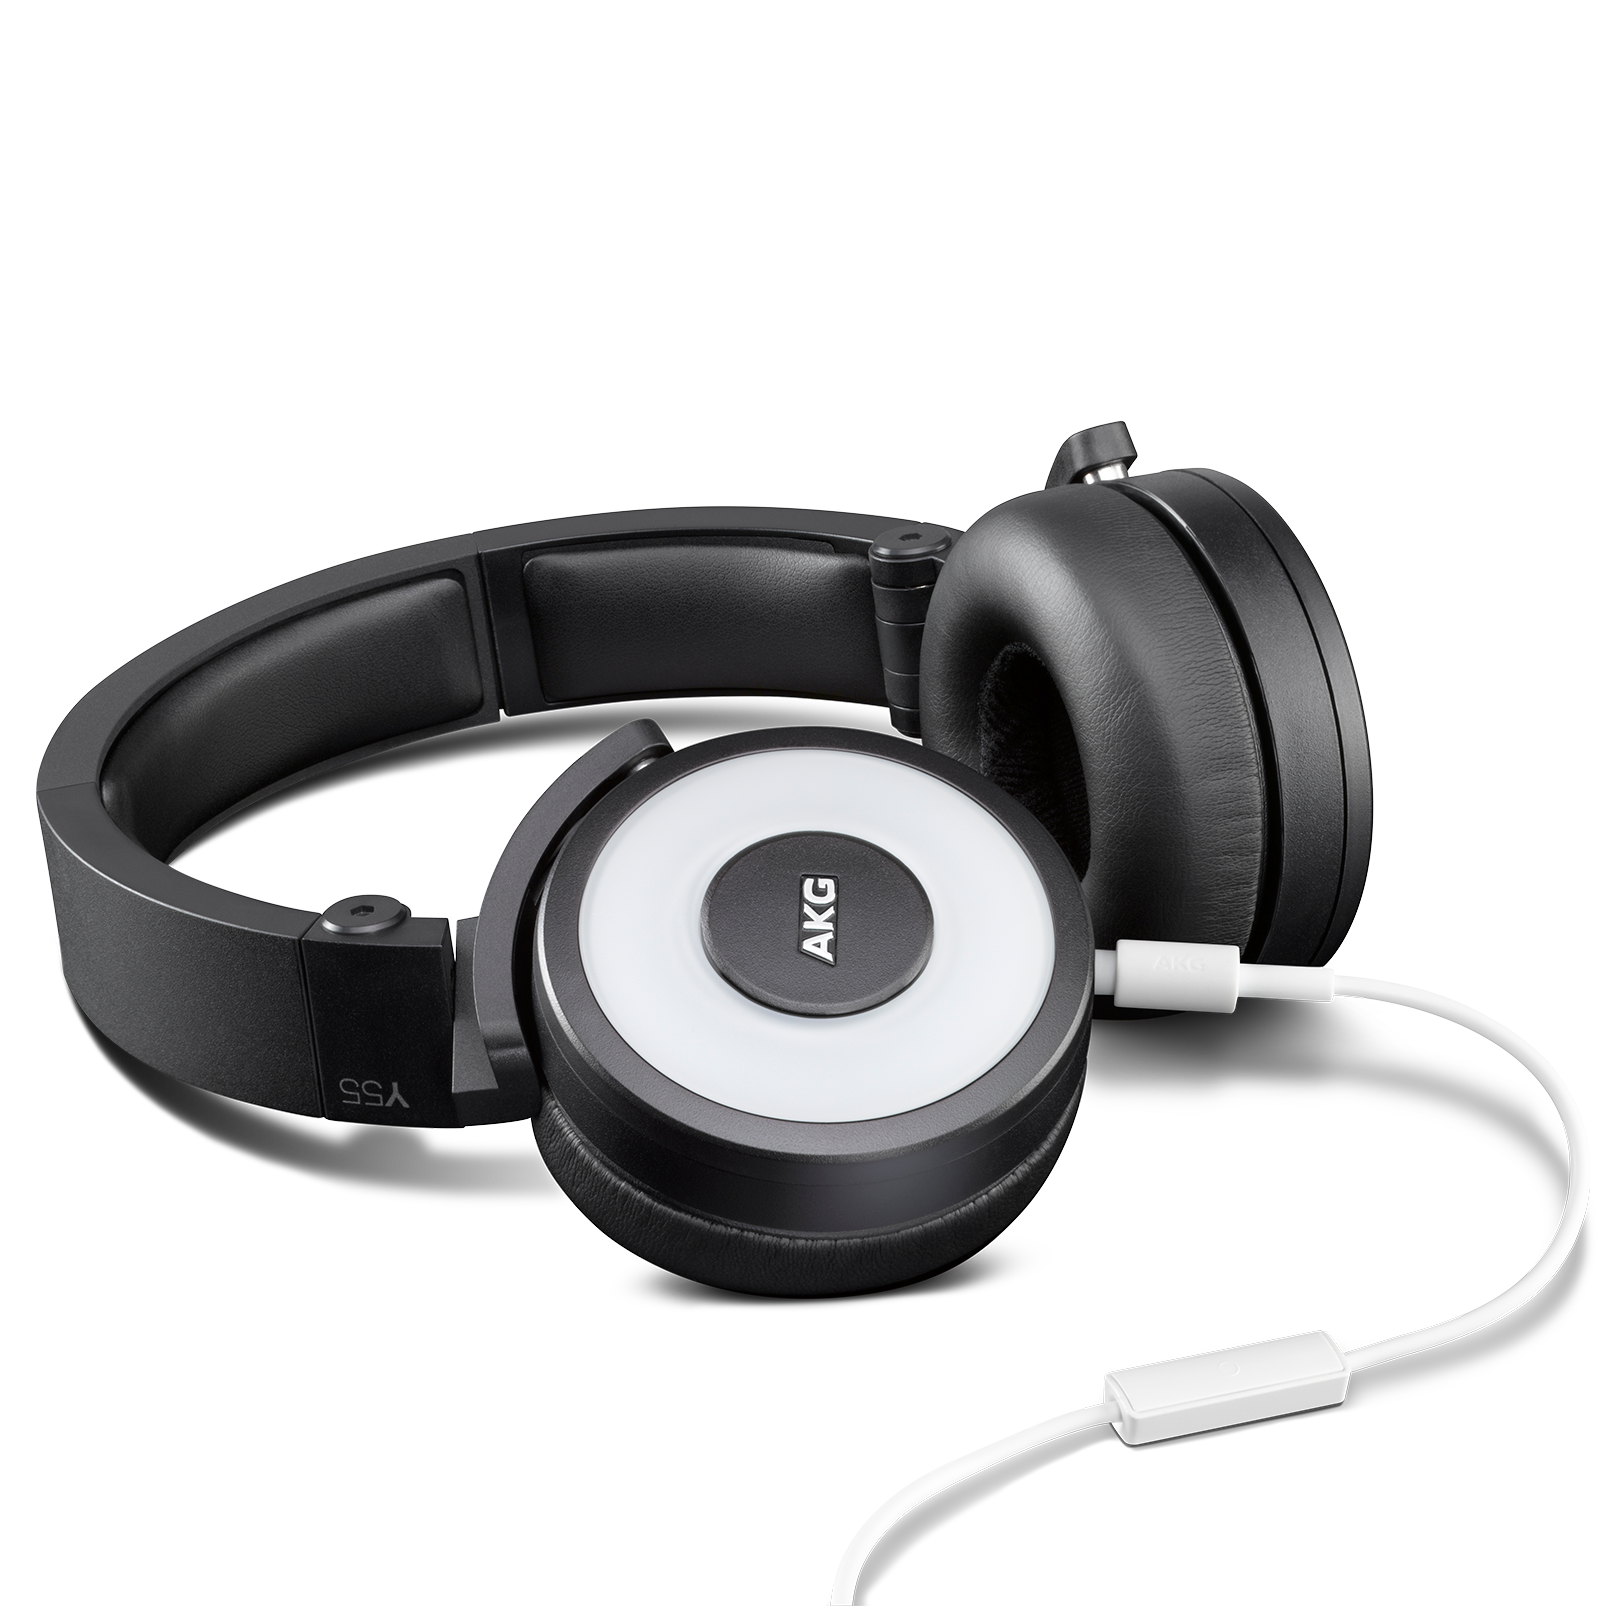 Y55 - White - High-performance DJ headphones with in-line microphone and remote - Detailshot 1